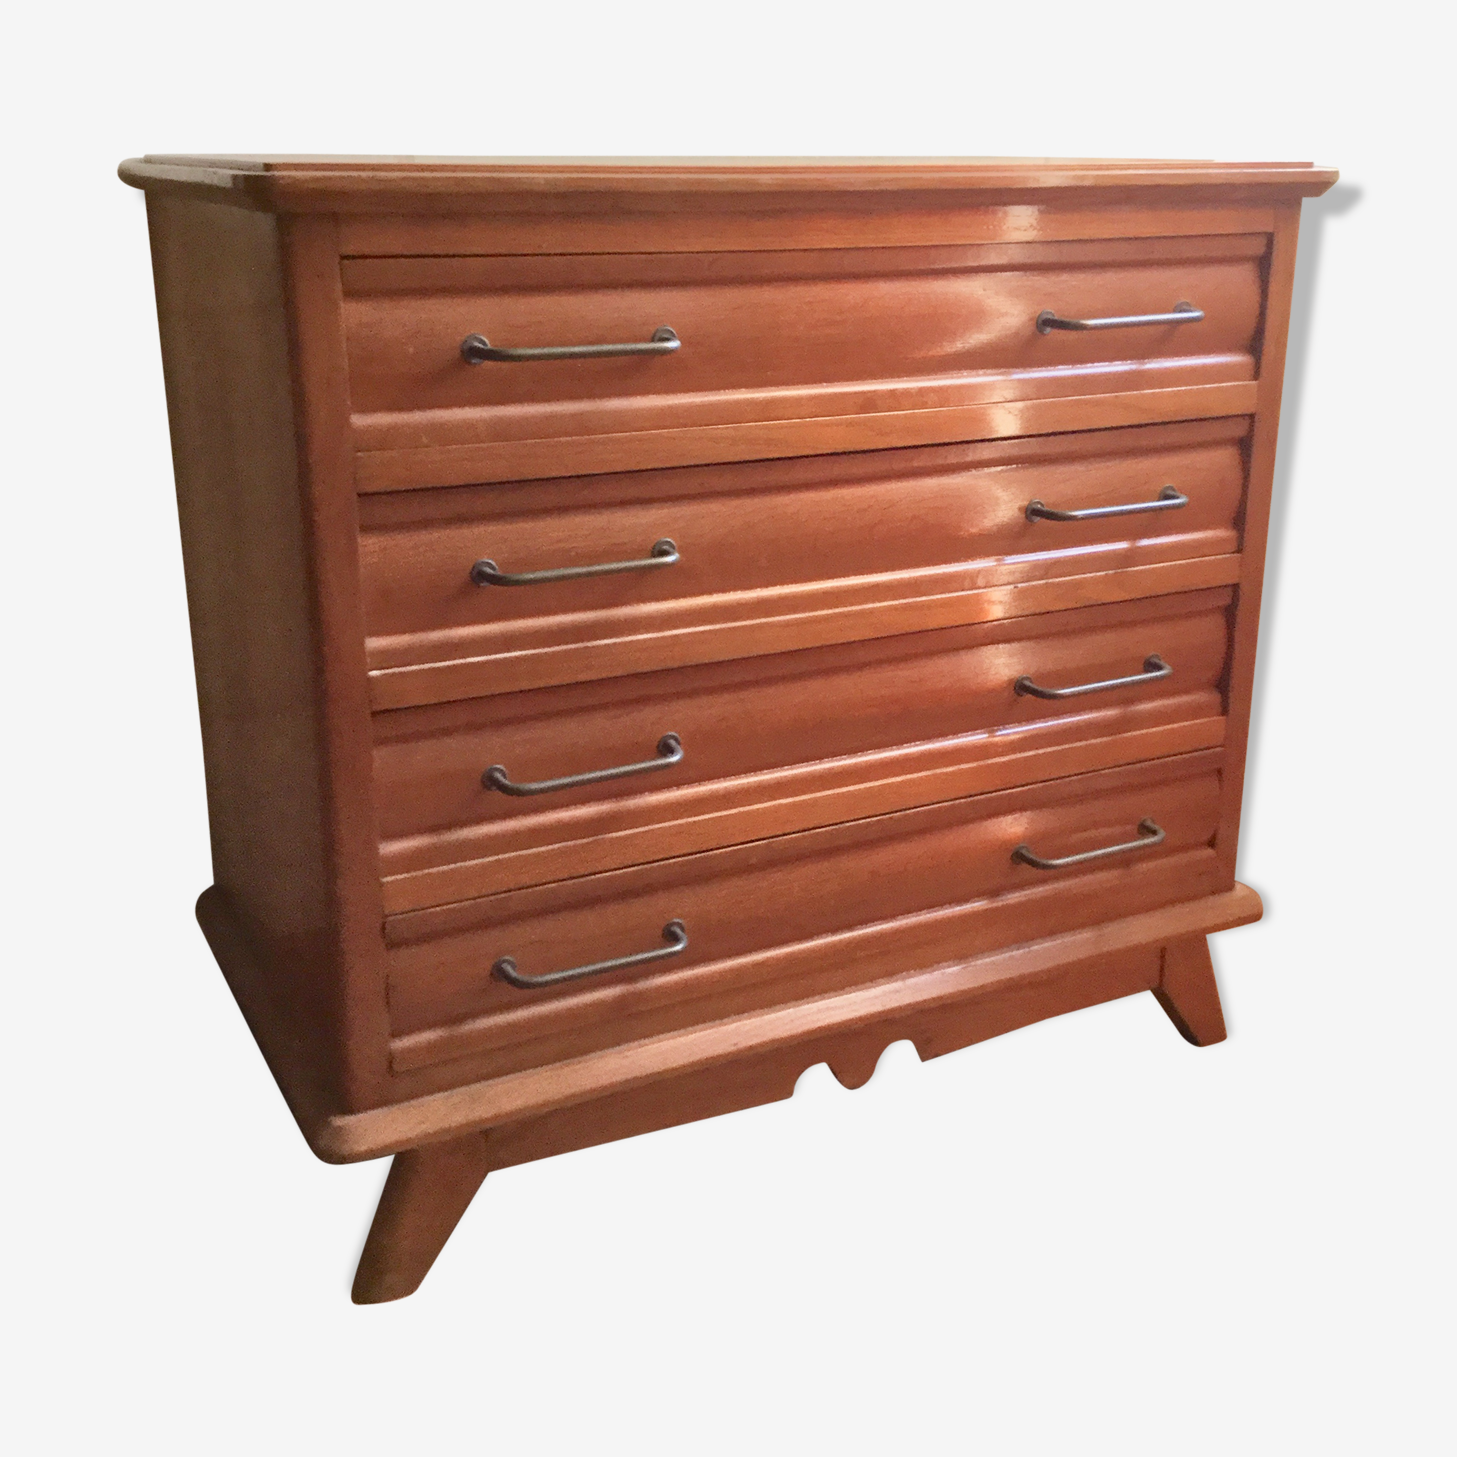 Commode vintage 76x84